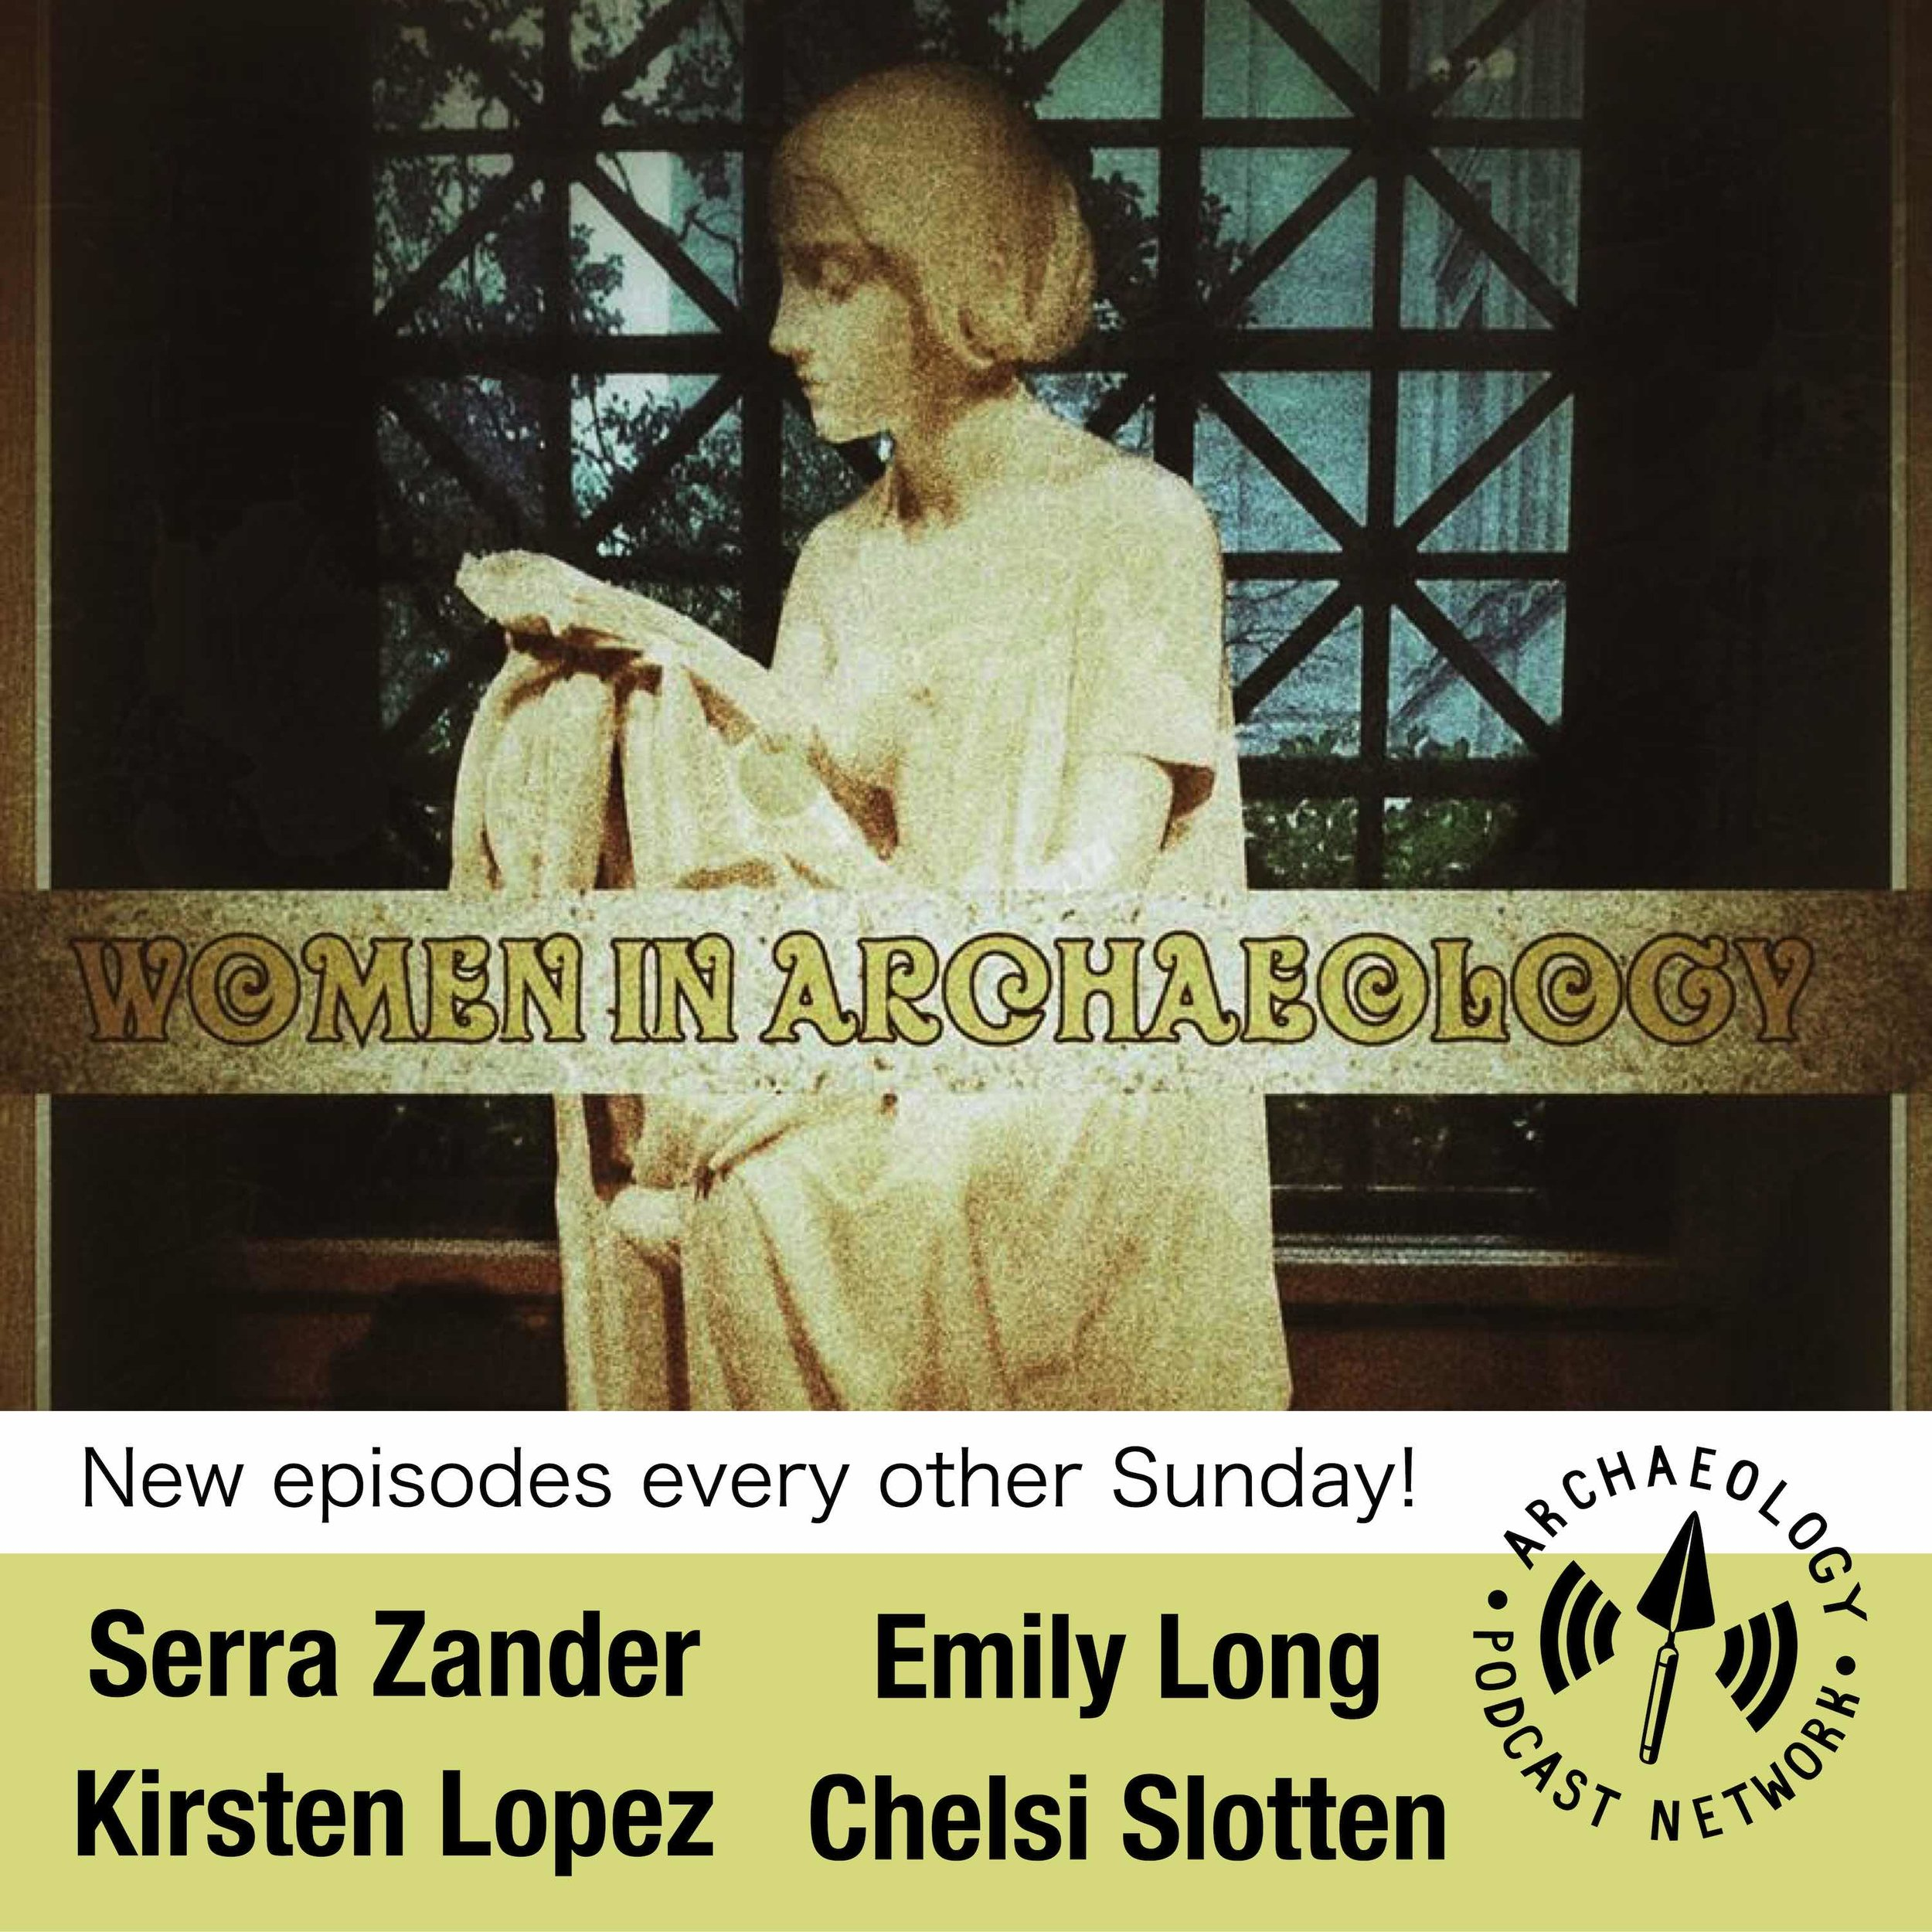 Archaeology News and History From a Woman's Perspective.